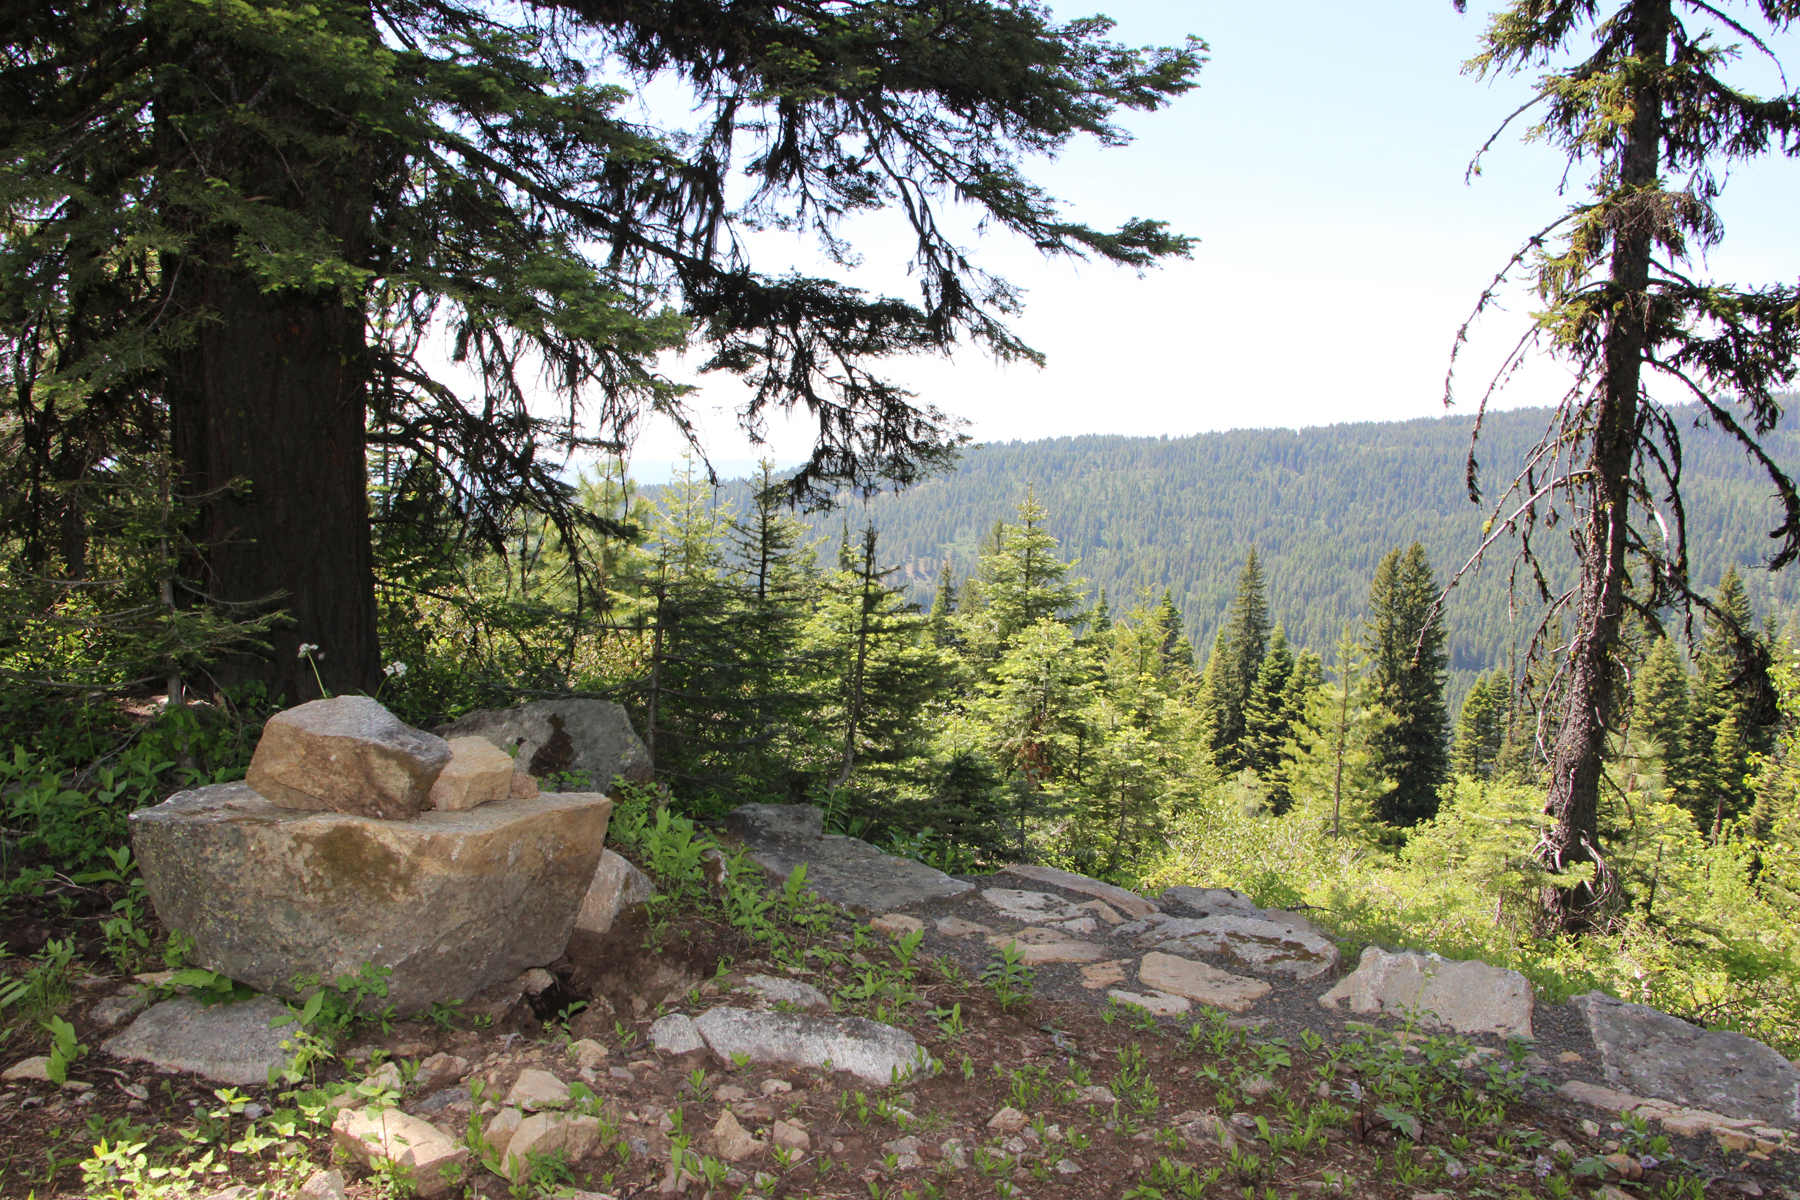 Hiking at Brundage Mountain